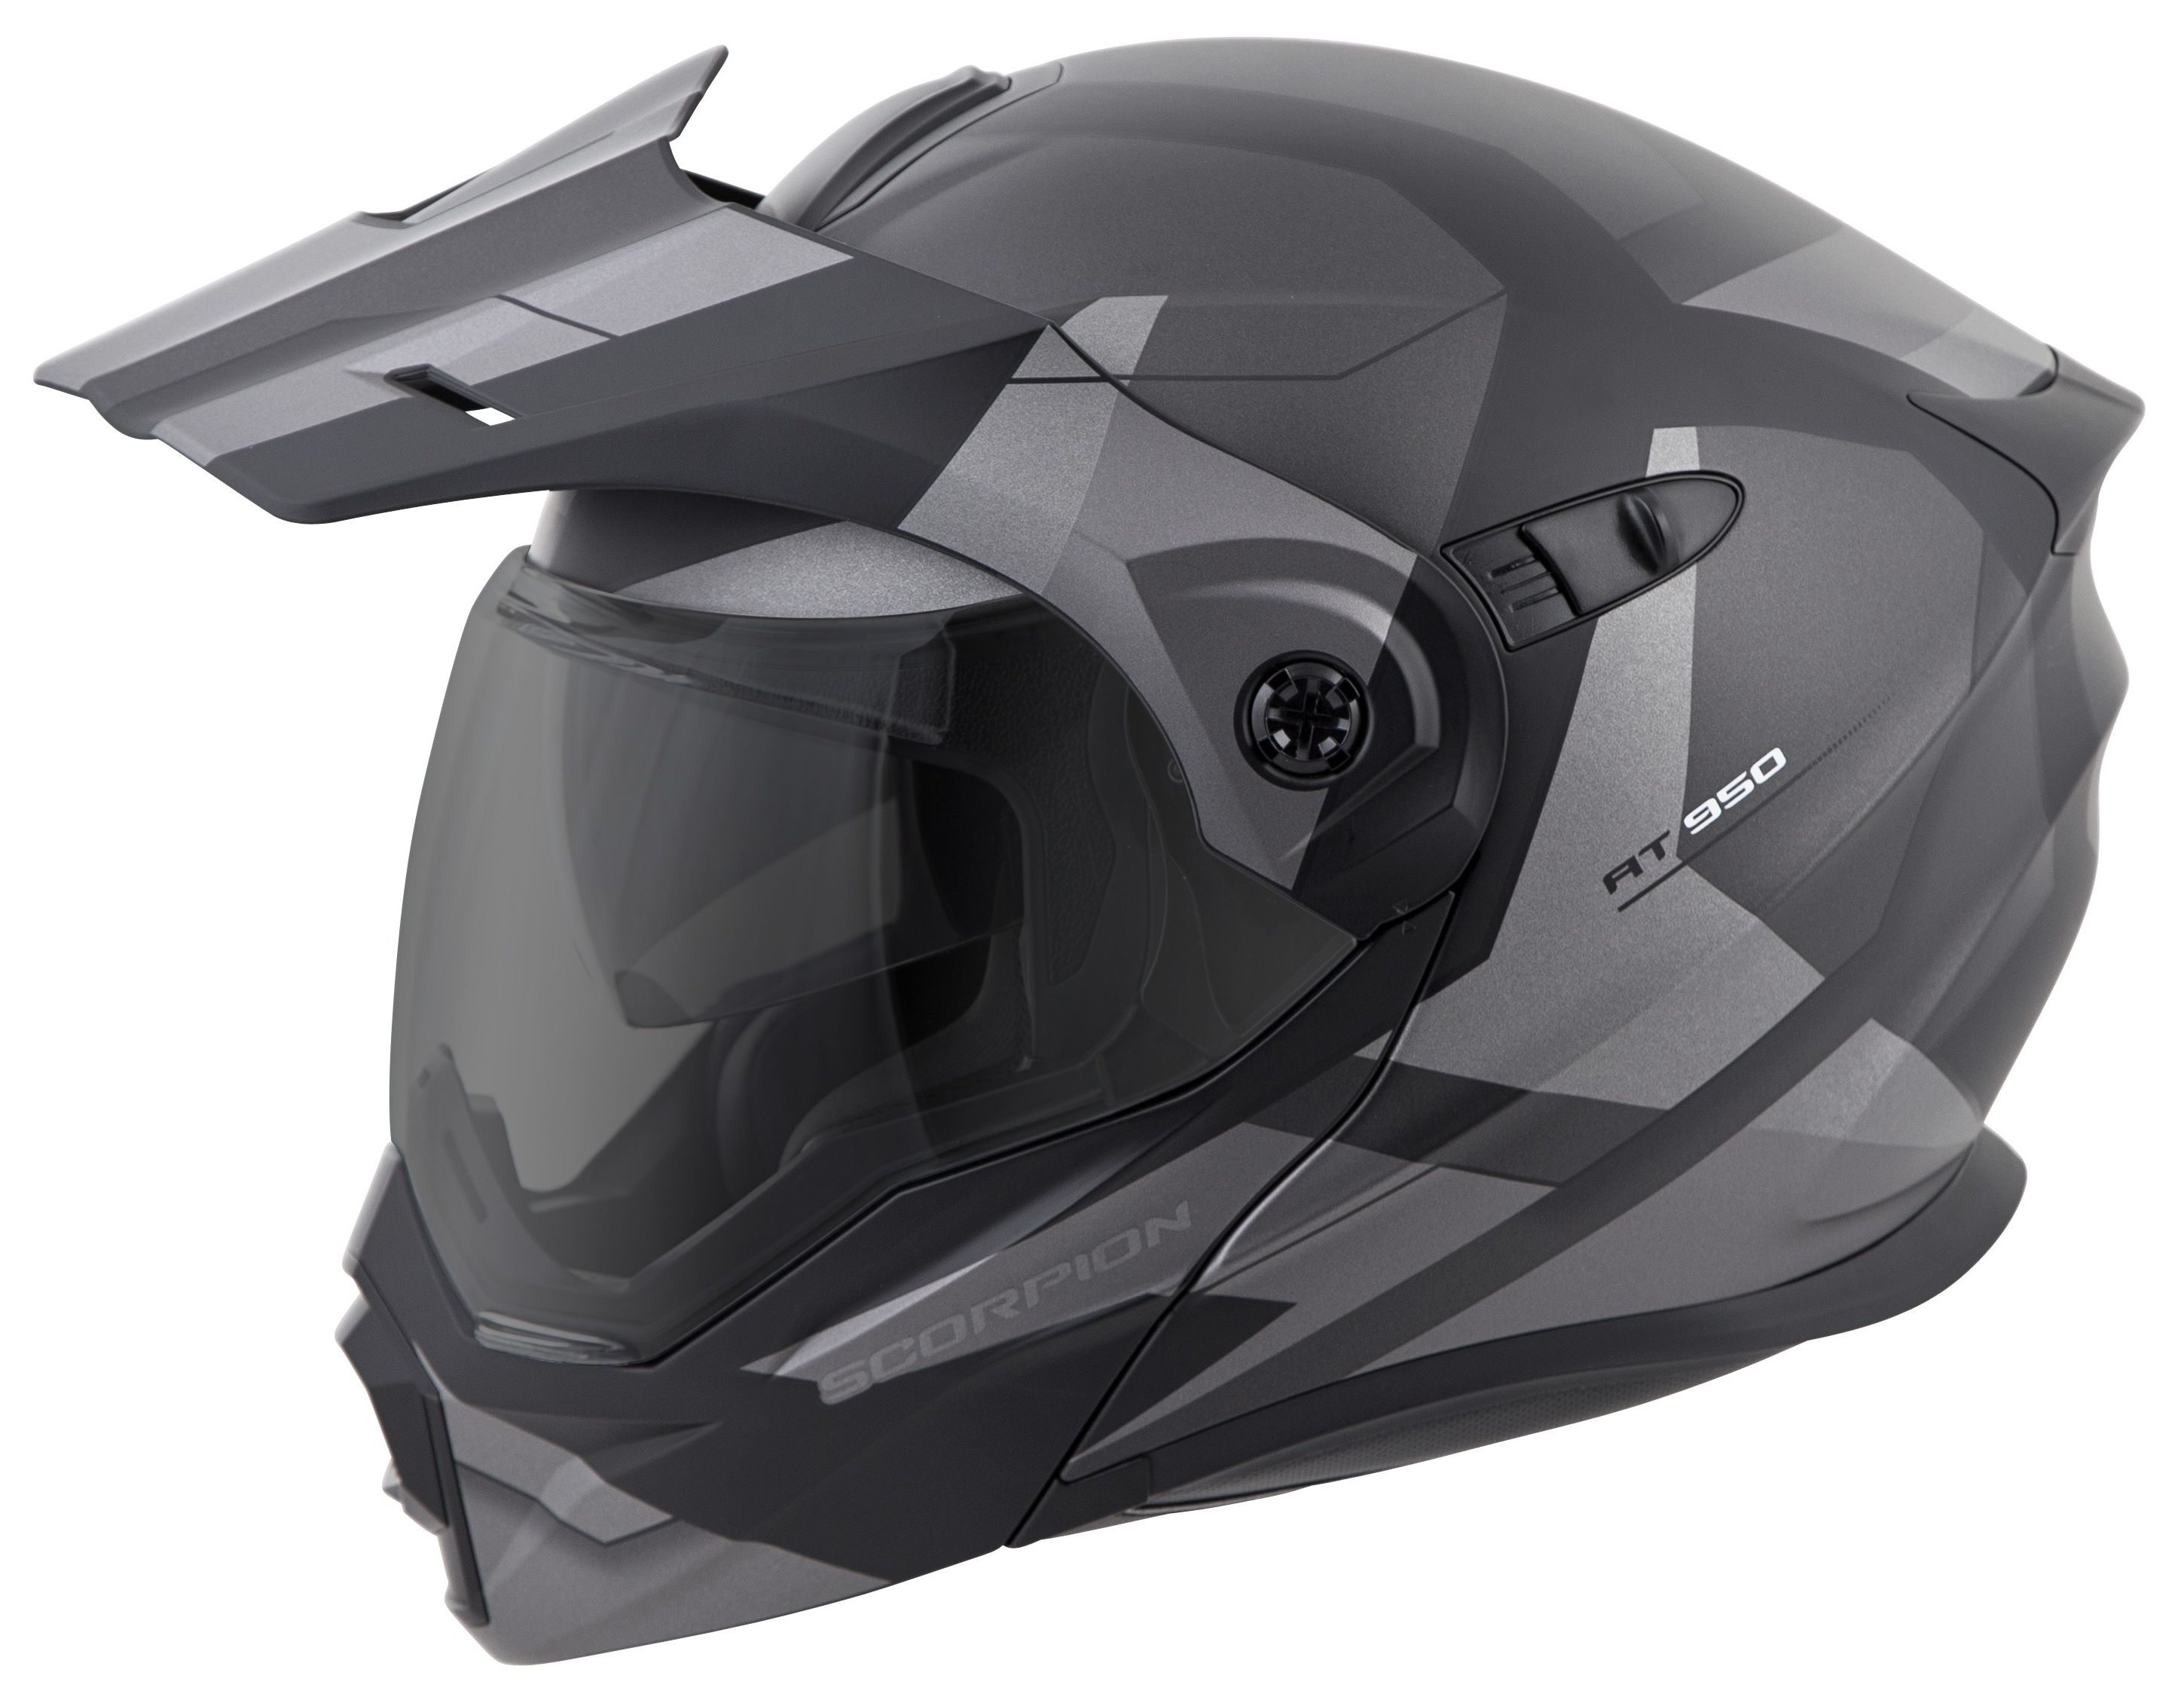 http://images2.revzilla.com/product_images/0195/0938/scorpion_exoat950_neocon_helmet_silver.jpg